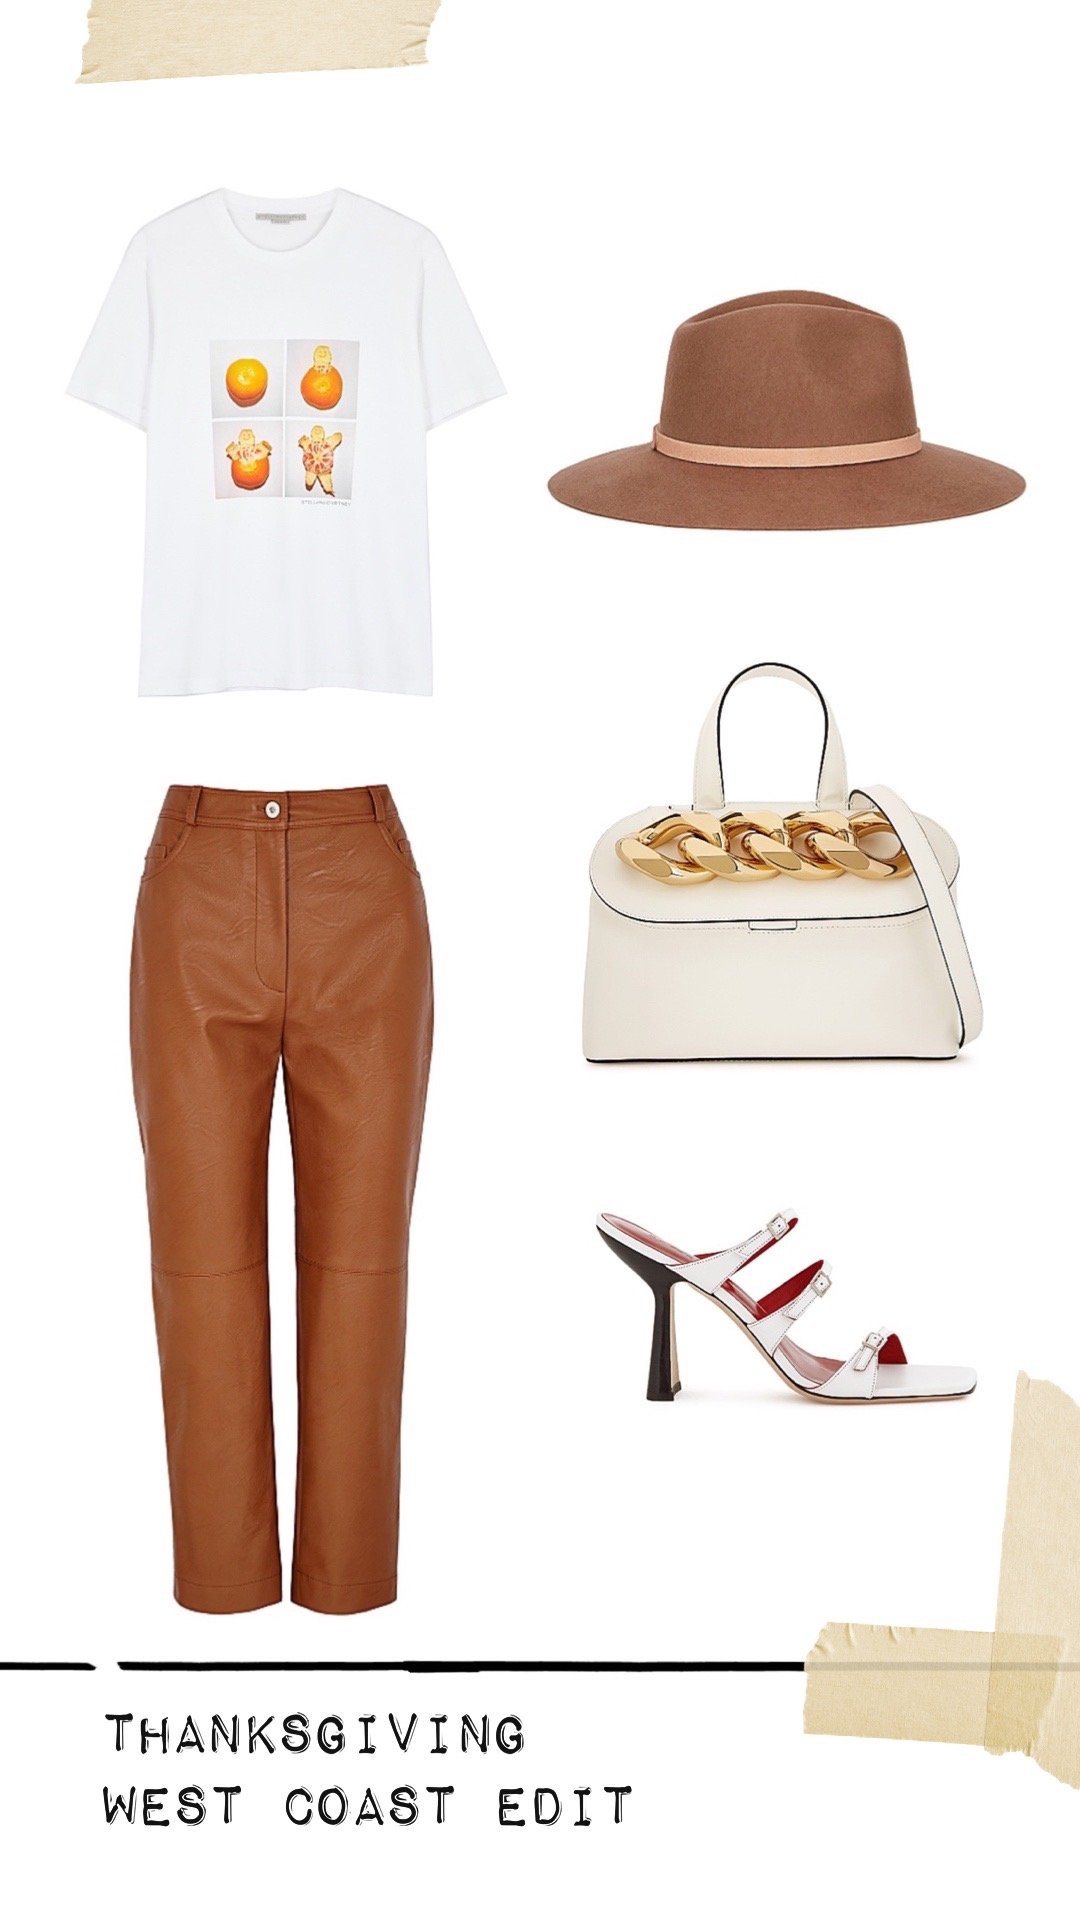 Harvey Nichols Thanksgiving outfit west coast edit